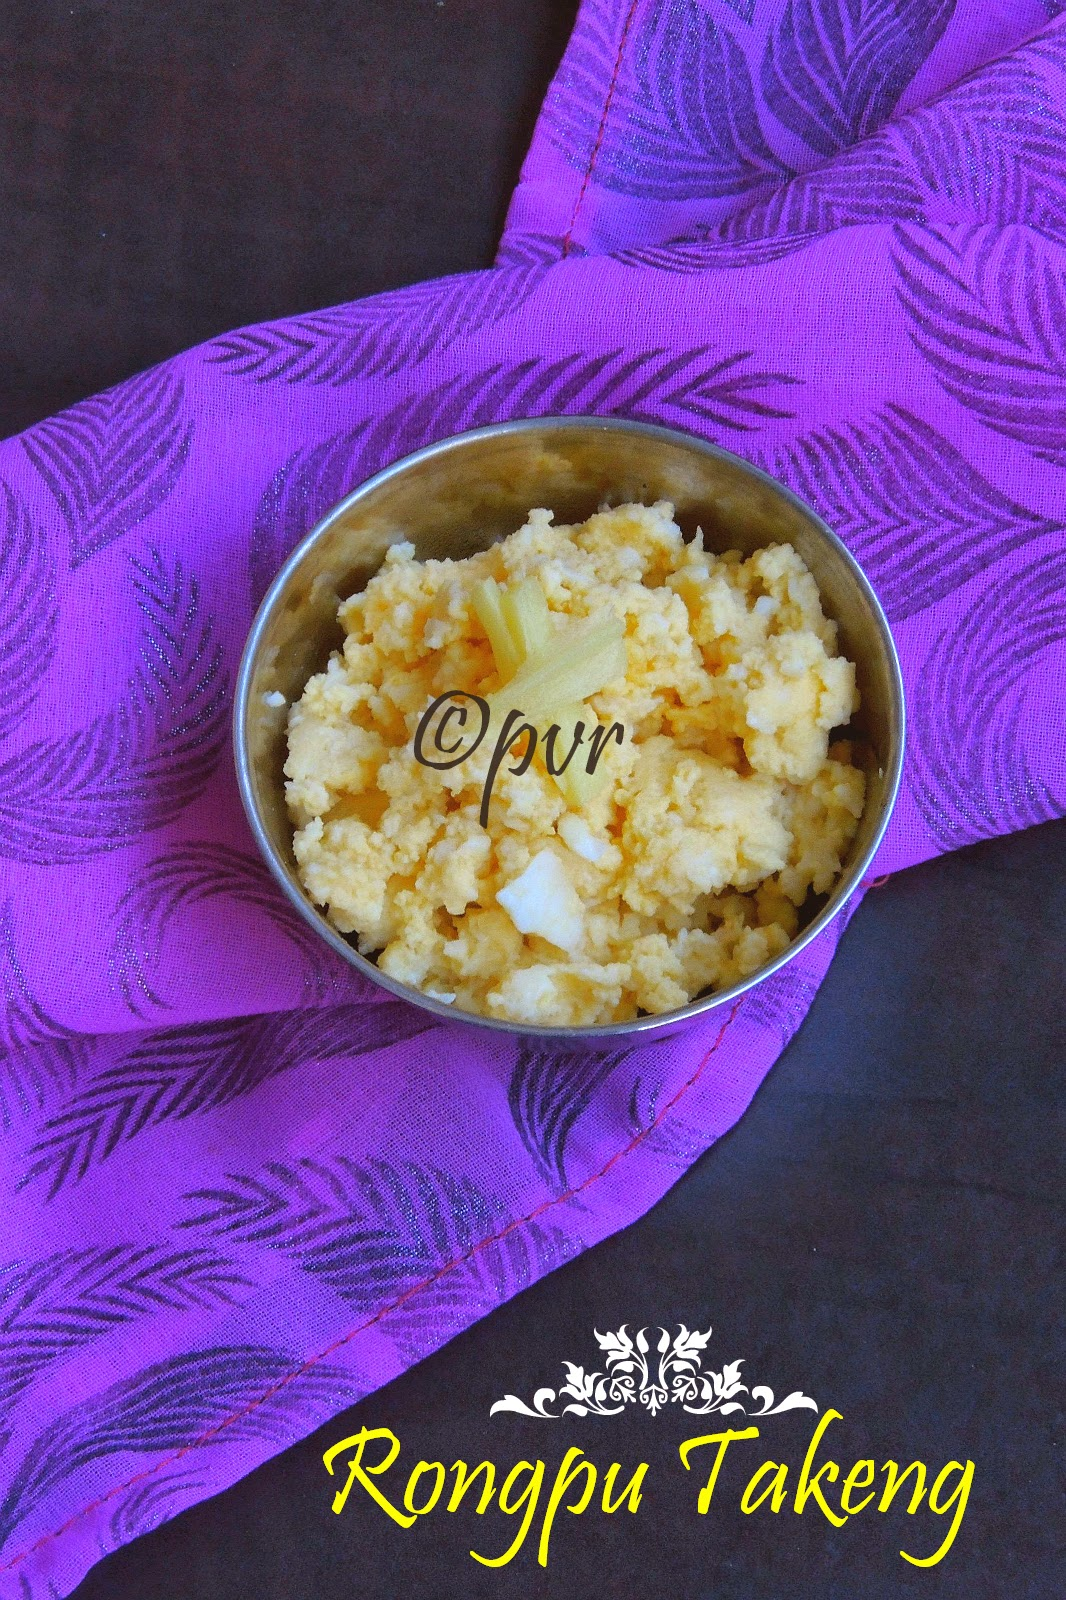 Priya 39 s versatile recipes zan and rongpu takeng for Arunachal pradesh cuisine